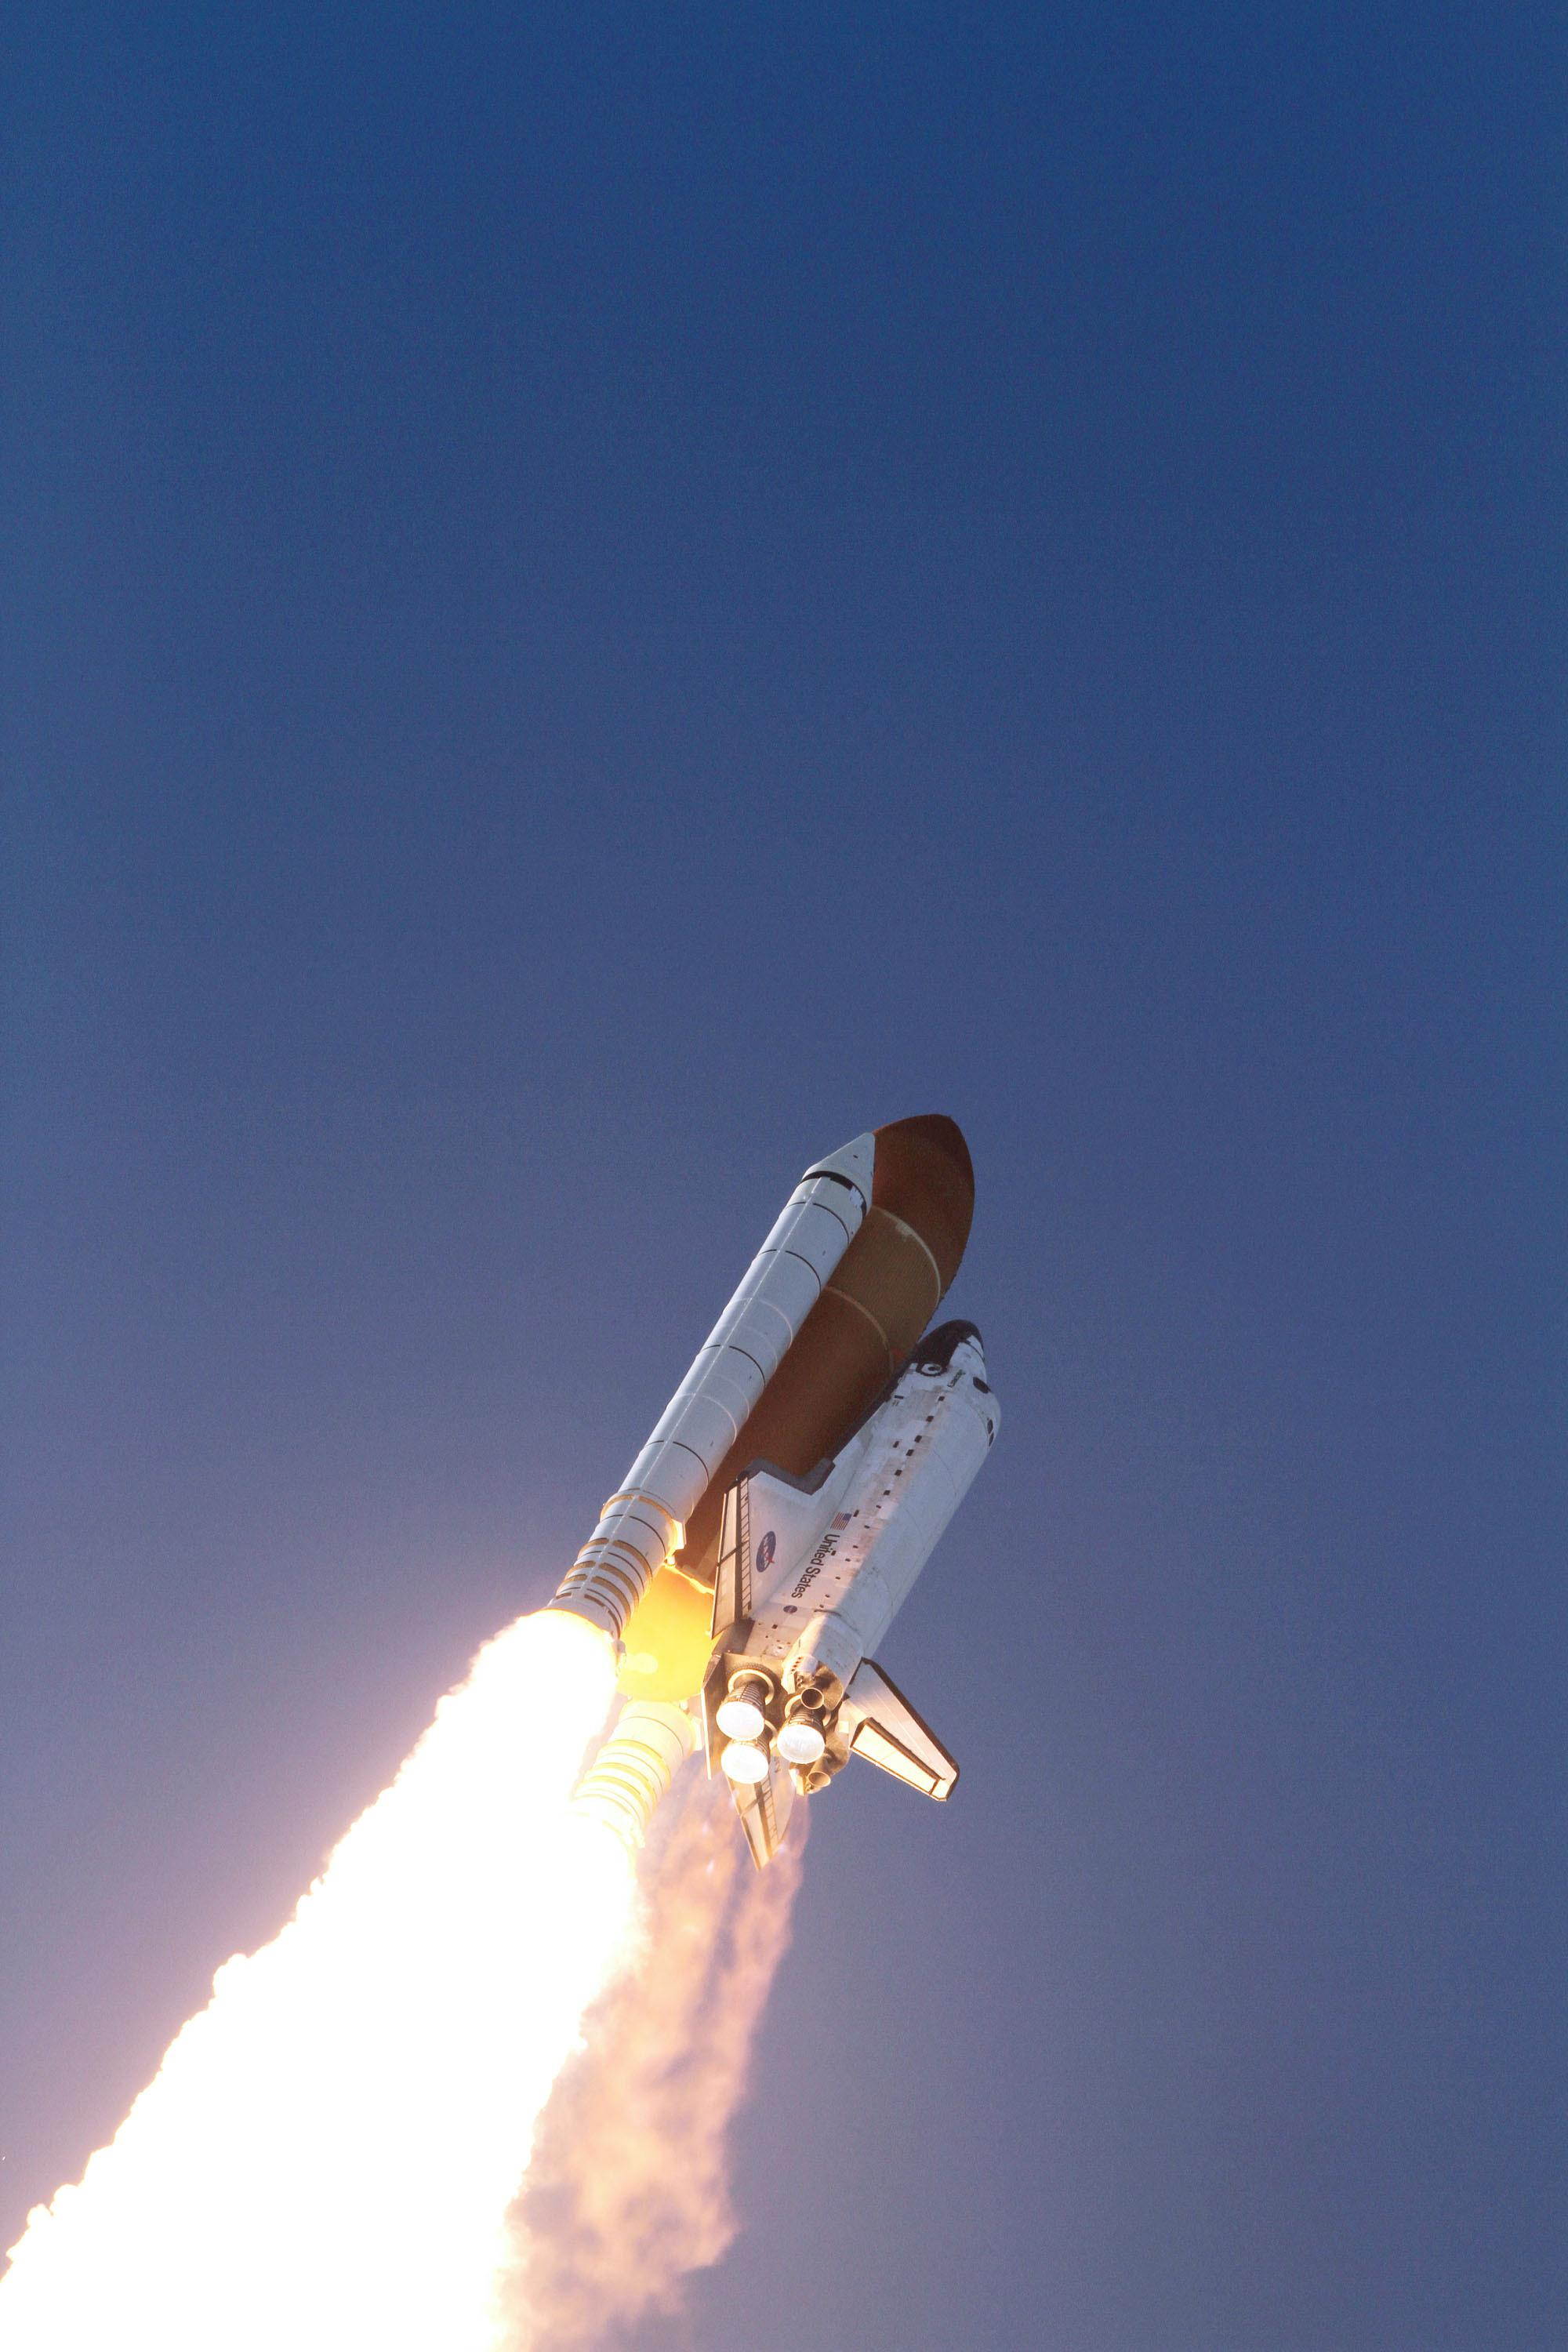 text space shuttle discovery missions - photo #23